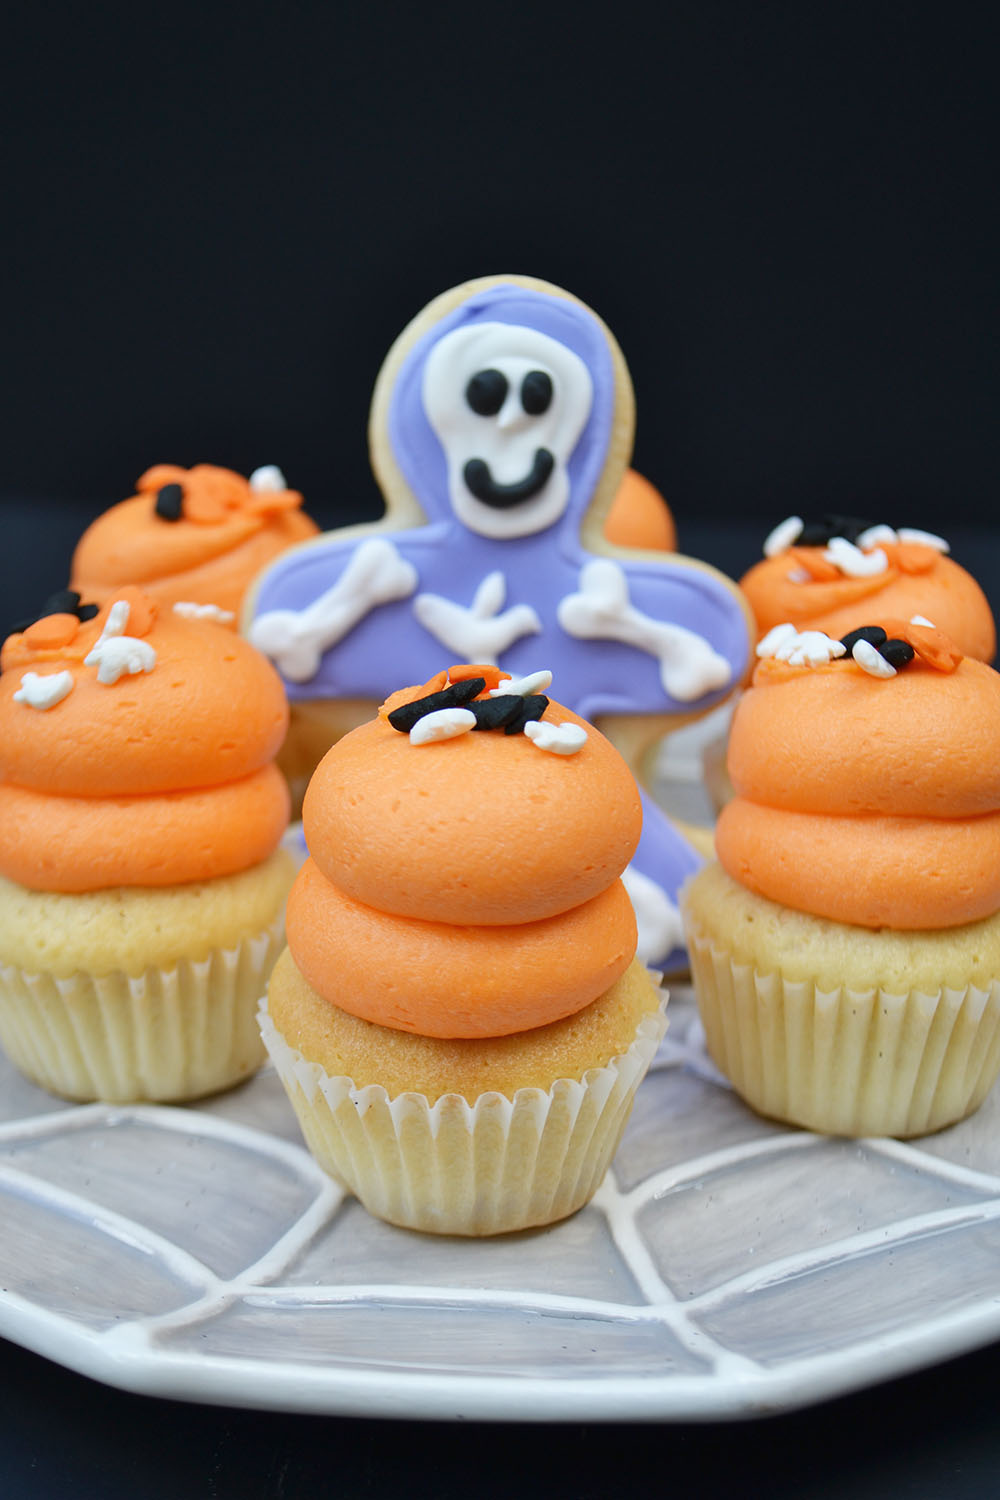 Mini Halloween Cupcake in Chocolate or Vanilla $1.75